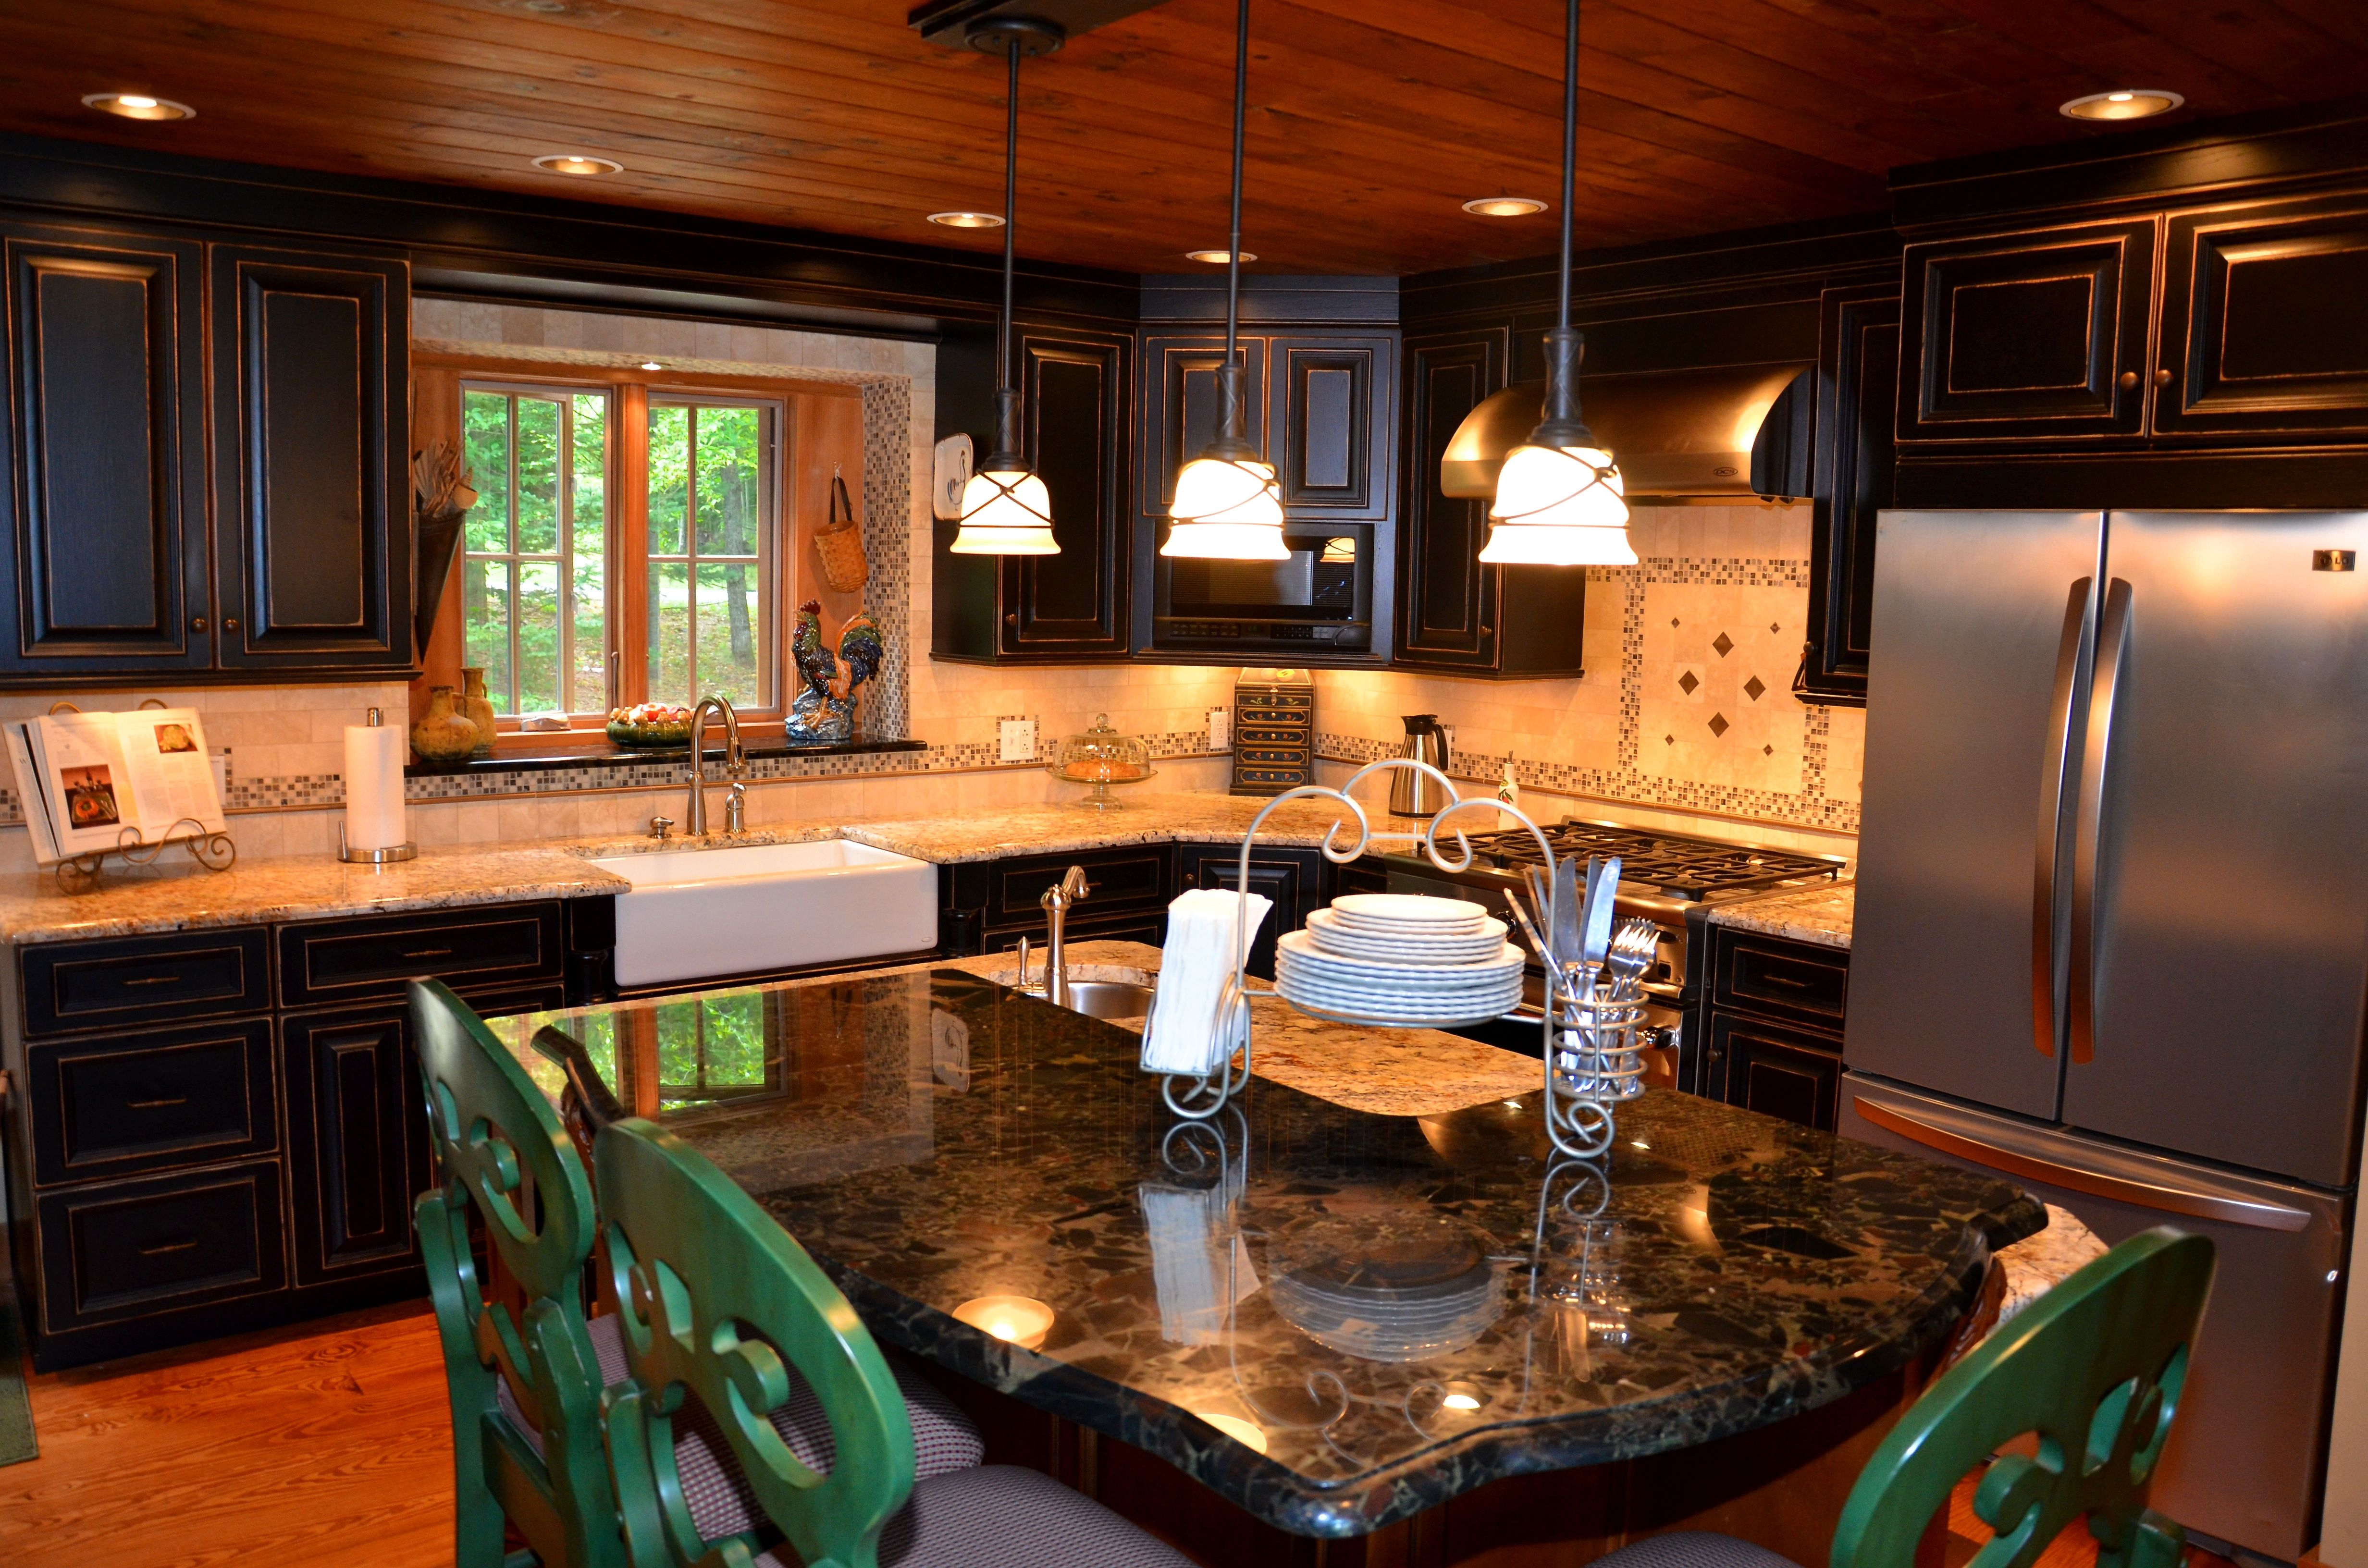 Discount Granite Countertops Nj Gold And Silver Granite Countertop With Black Cabinets